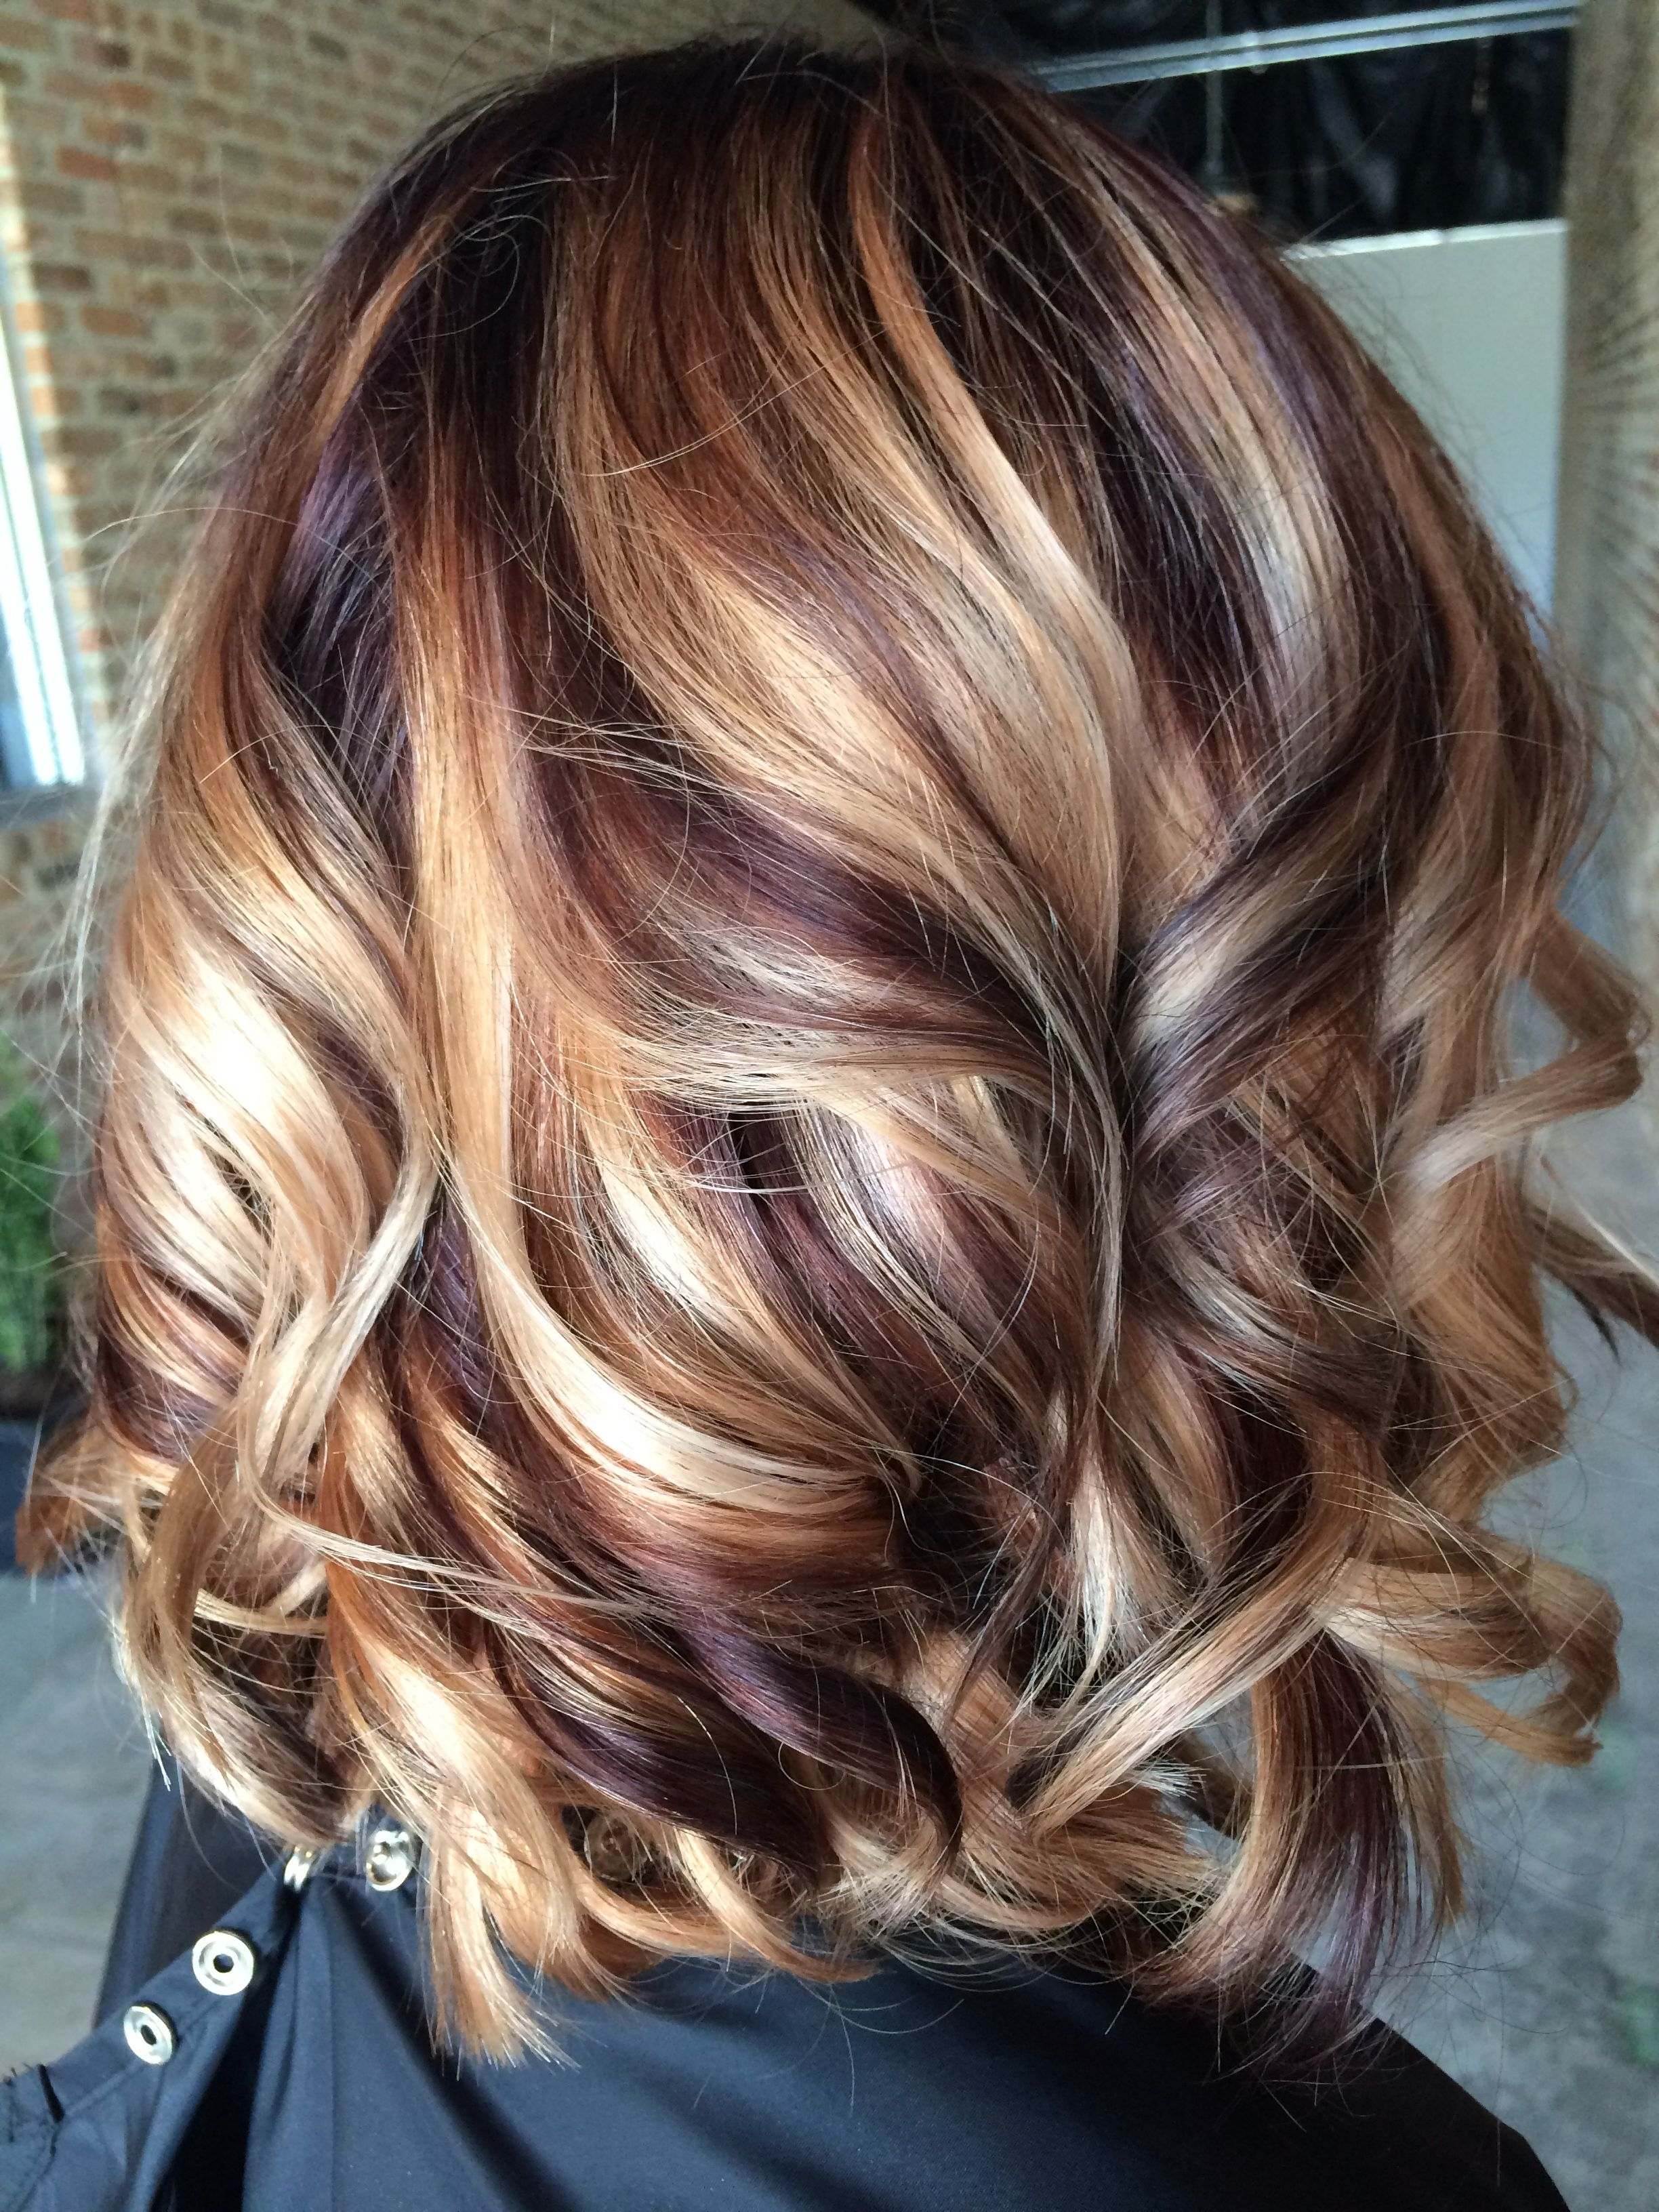 Hair Ideas Throughout Most Recently Released Contrasting Highlights Blonde Hairstyles (View 12 of 20)